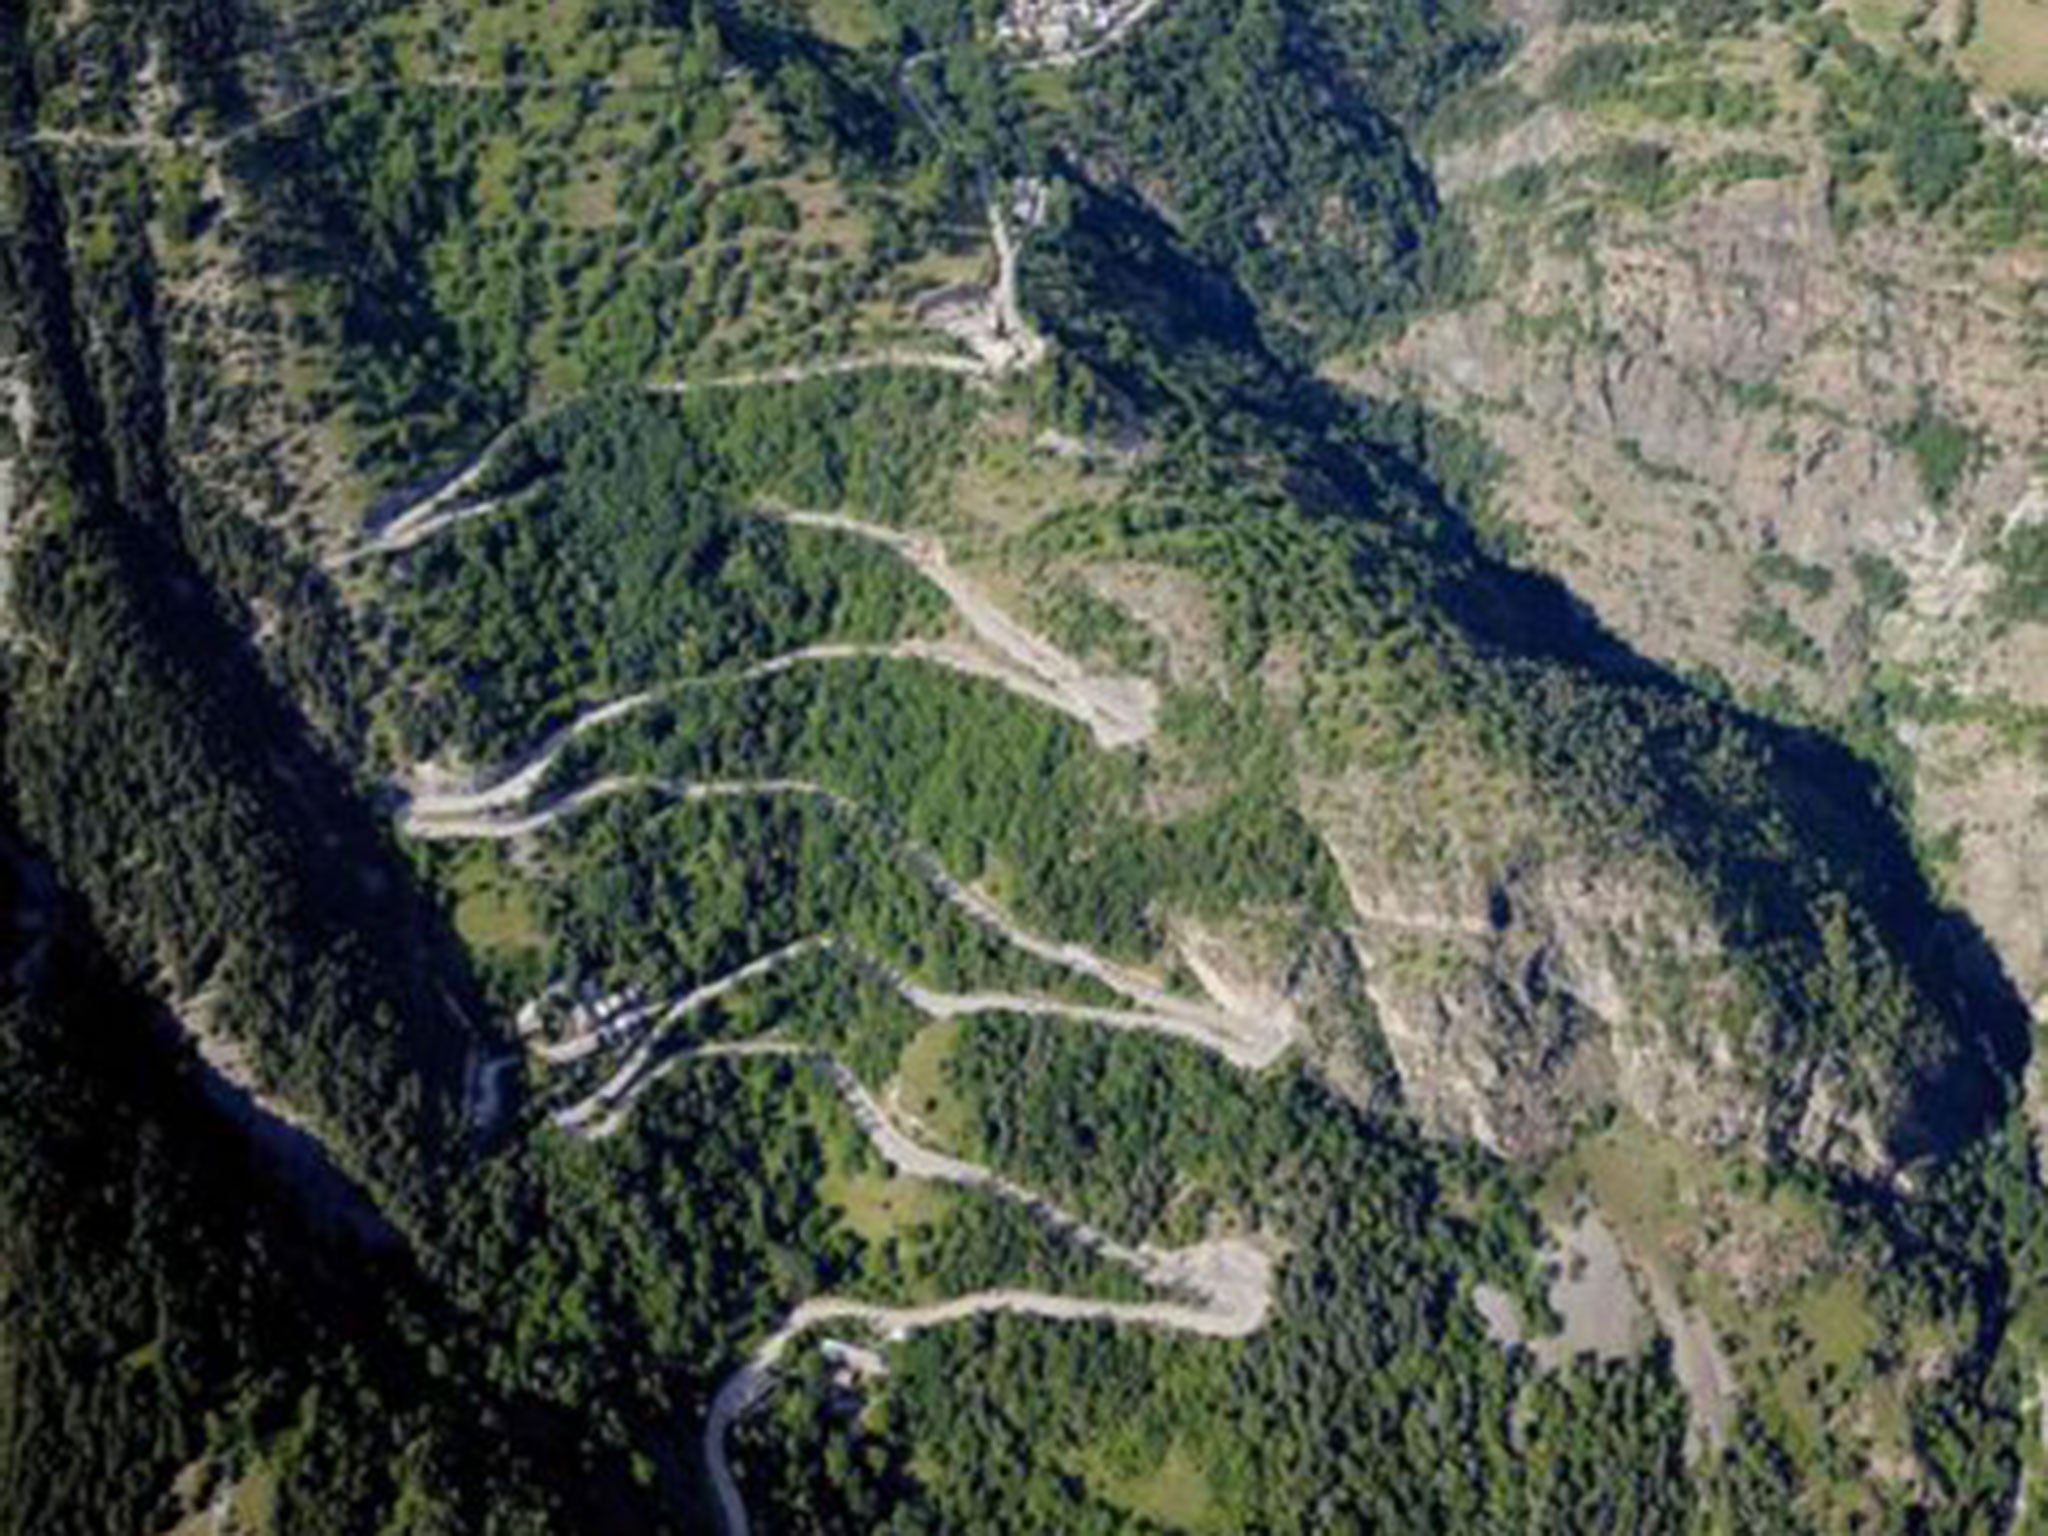 Alpe D'Huez France  city images : Tour de France 2015, Alpe d'Huez: It has 21 hairpins zigzagging like a ...